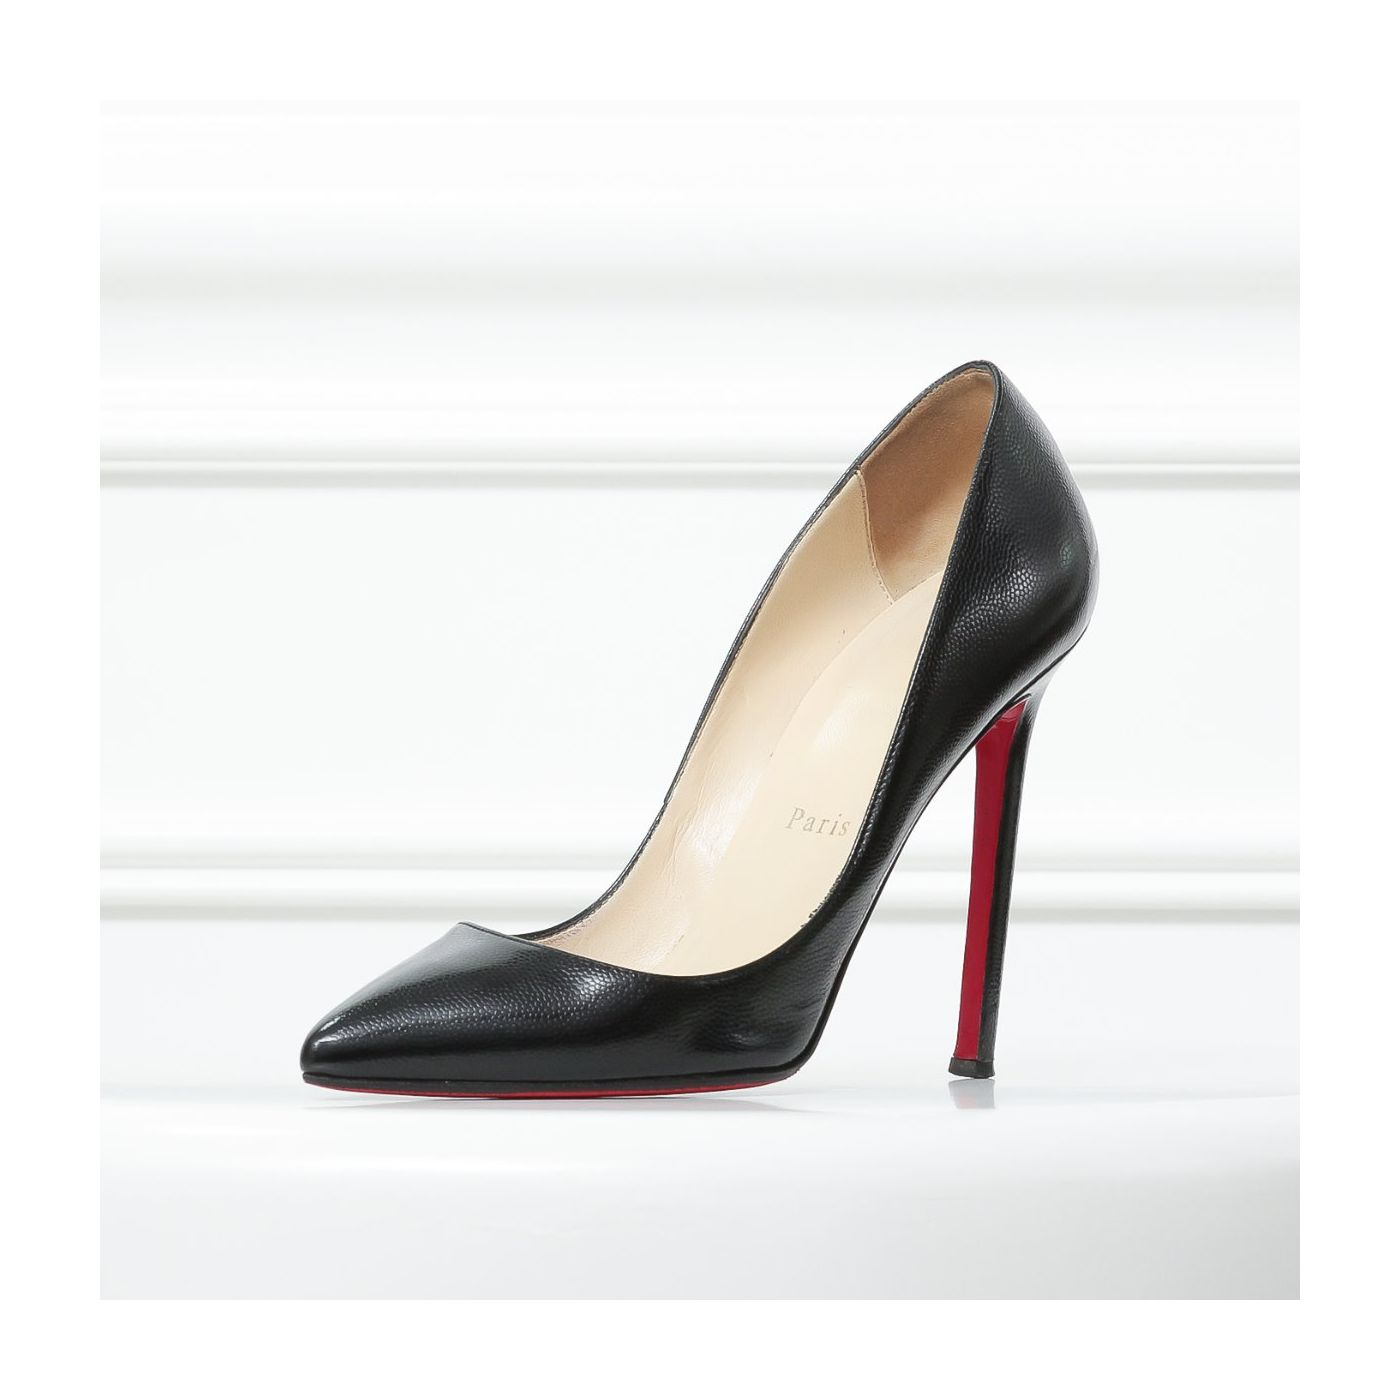 Christian Louboutin Black So Kate Pumps 36.5